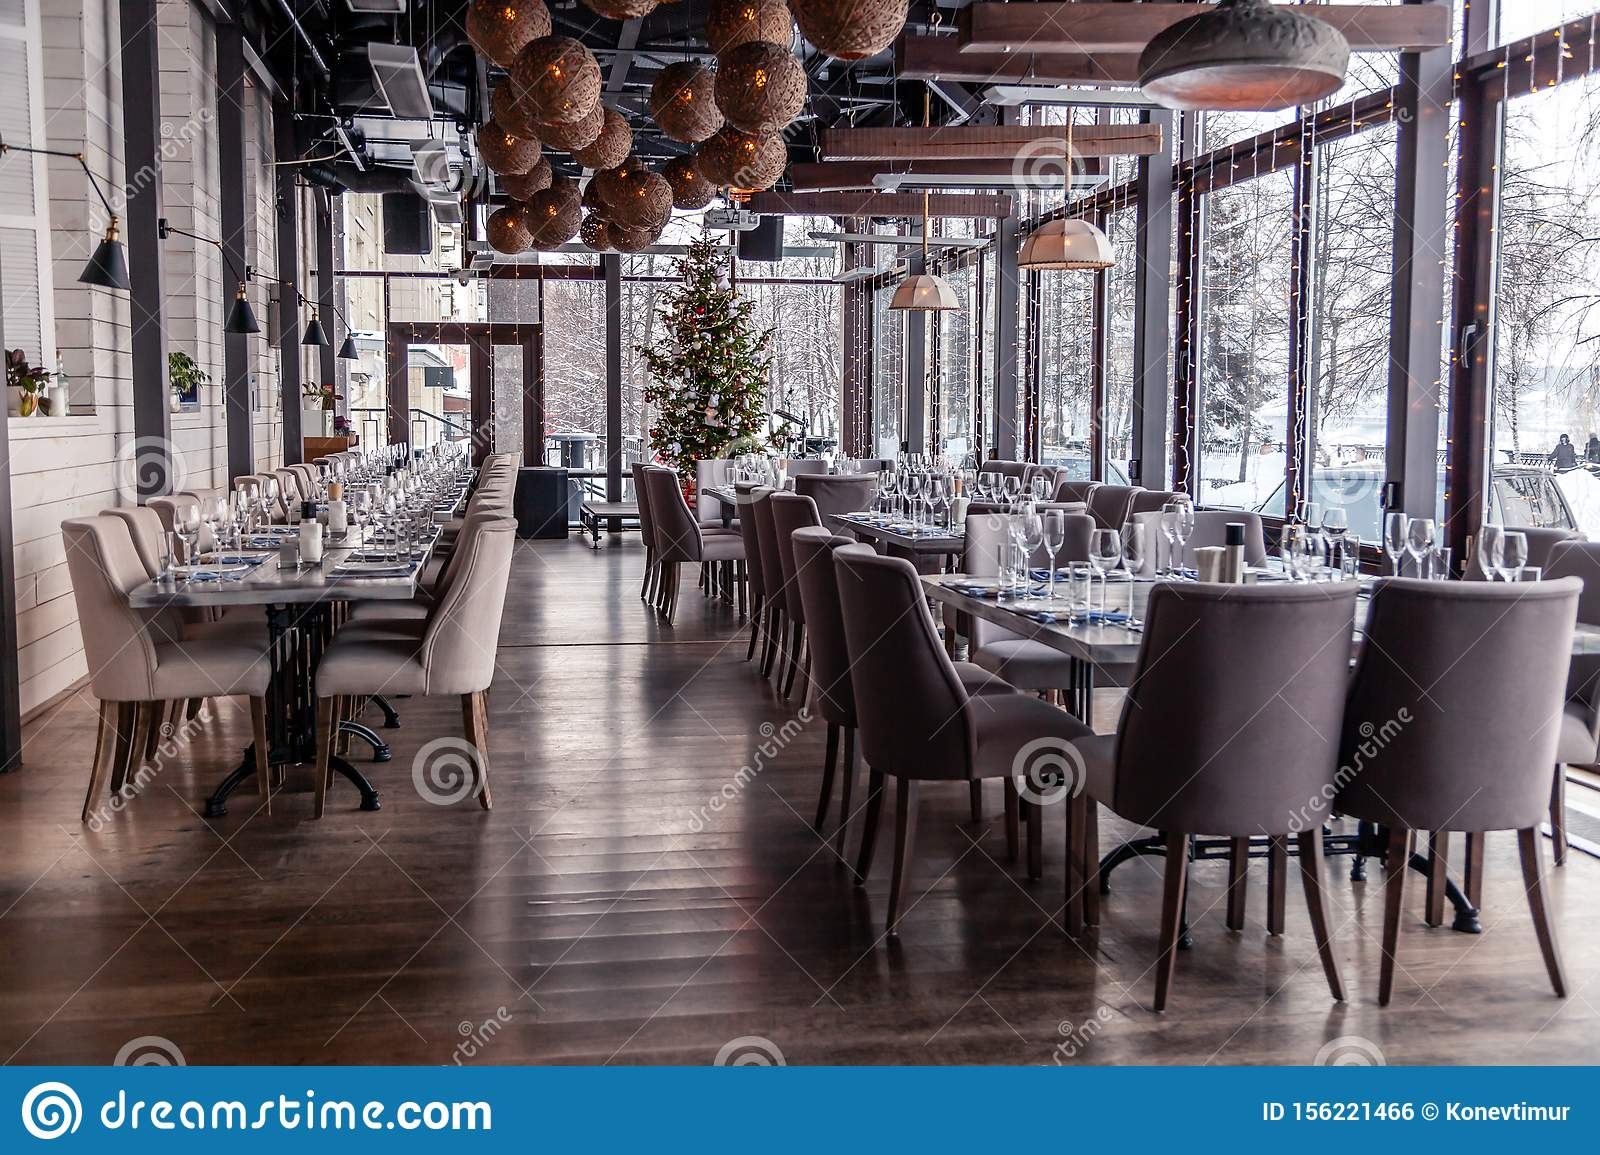 Christmas Lights Decor Interior Modern Restaurant Panoramic Windows Setting Serving Banquet Gray Textile Chairs Serving Stock Photo Image Of Winter Plates 156221466